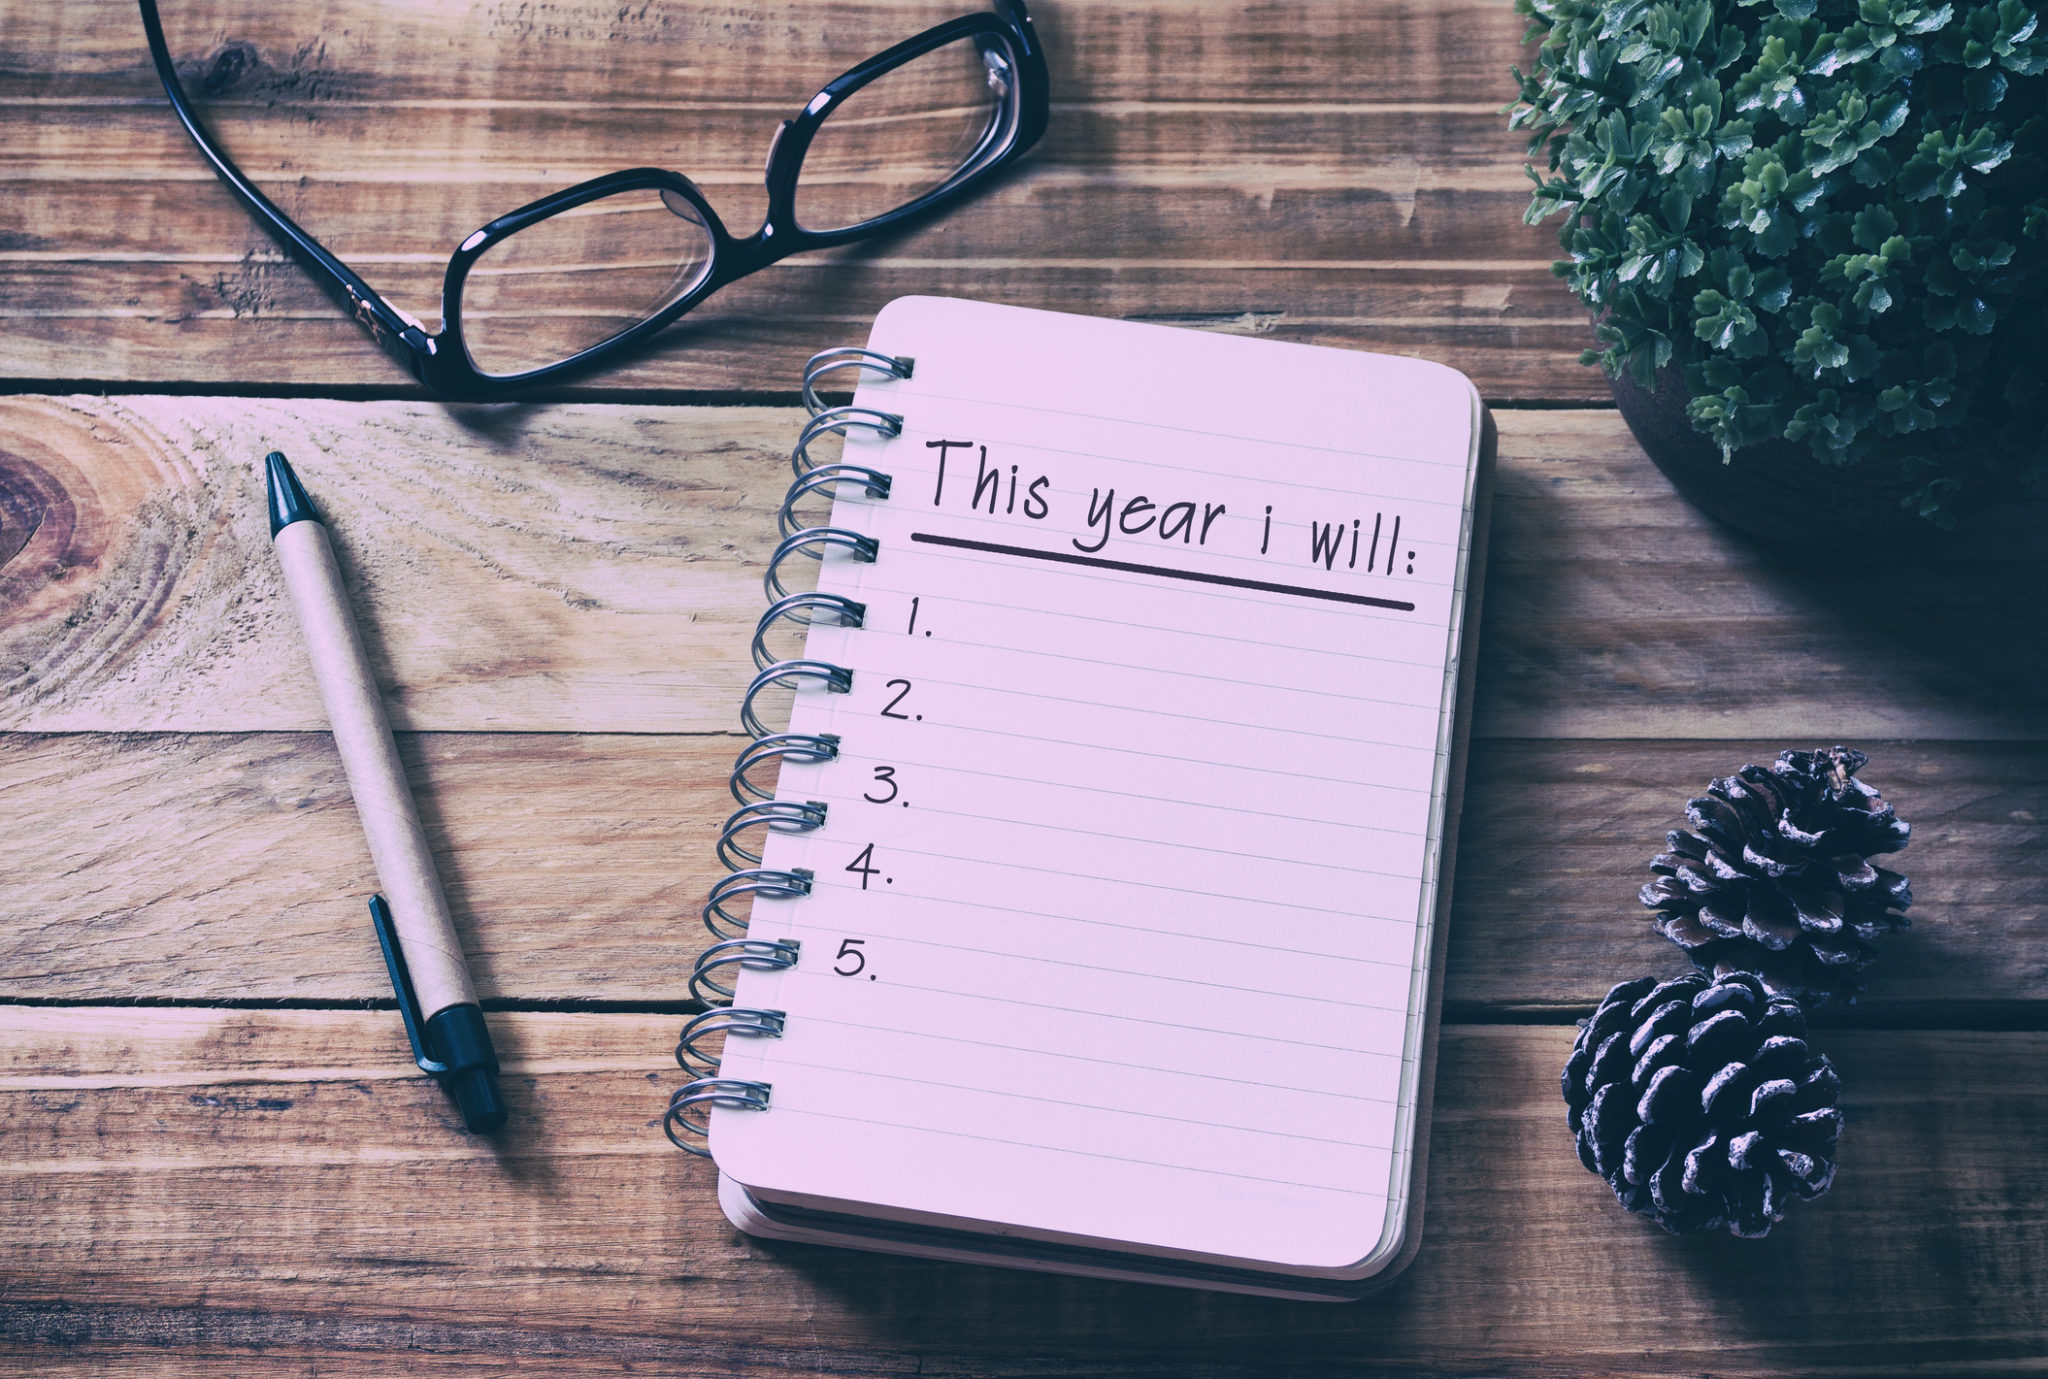 This Year I Will list